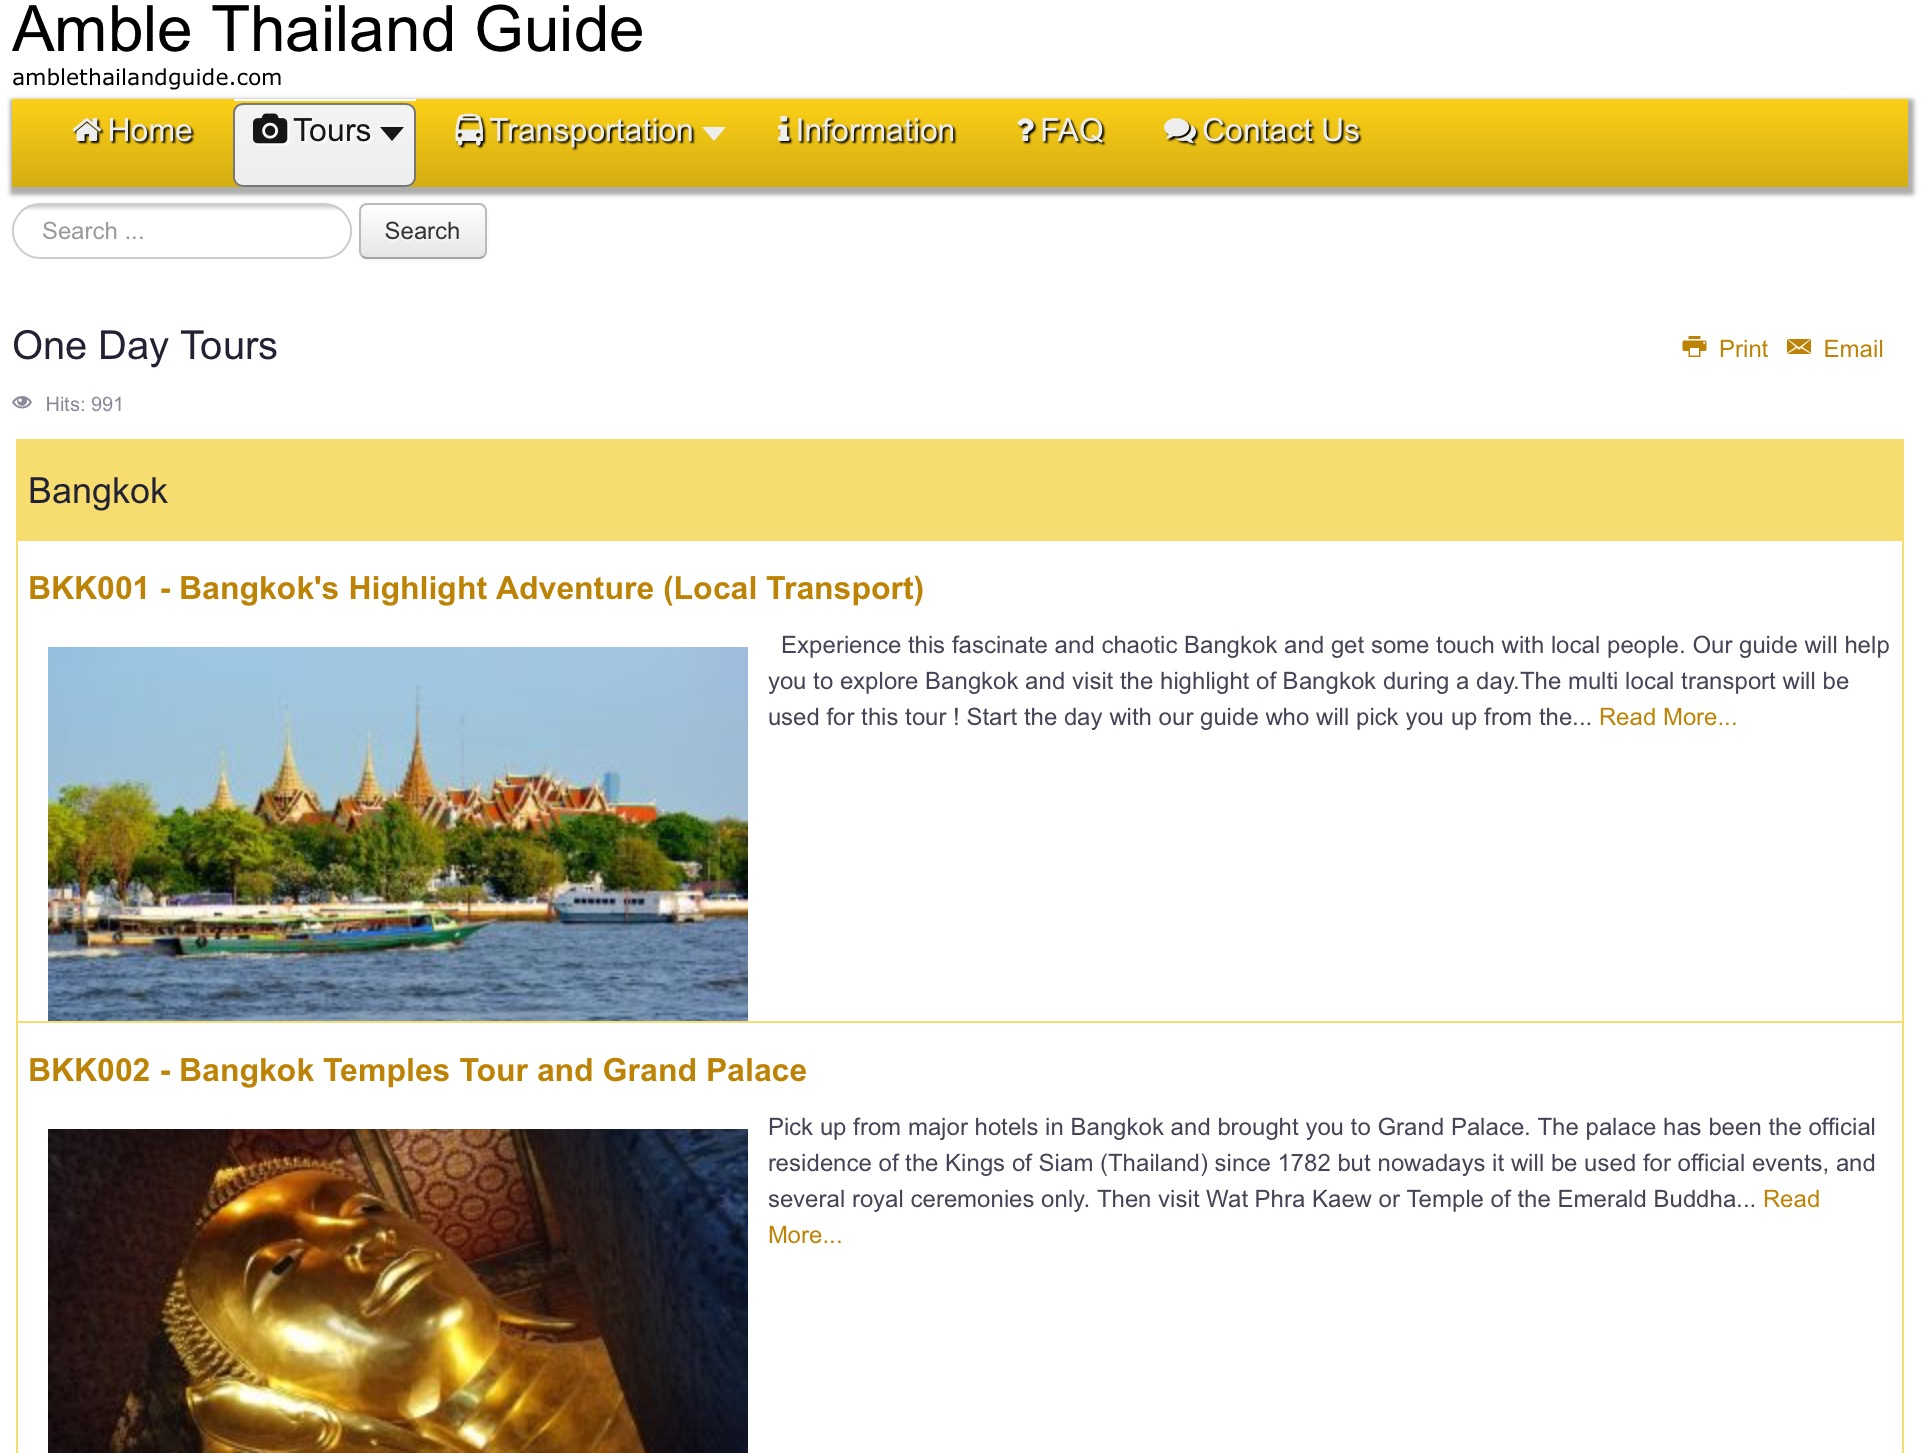 Amble Thailand Guide